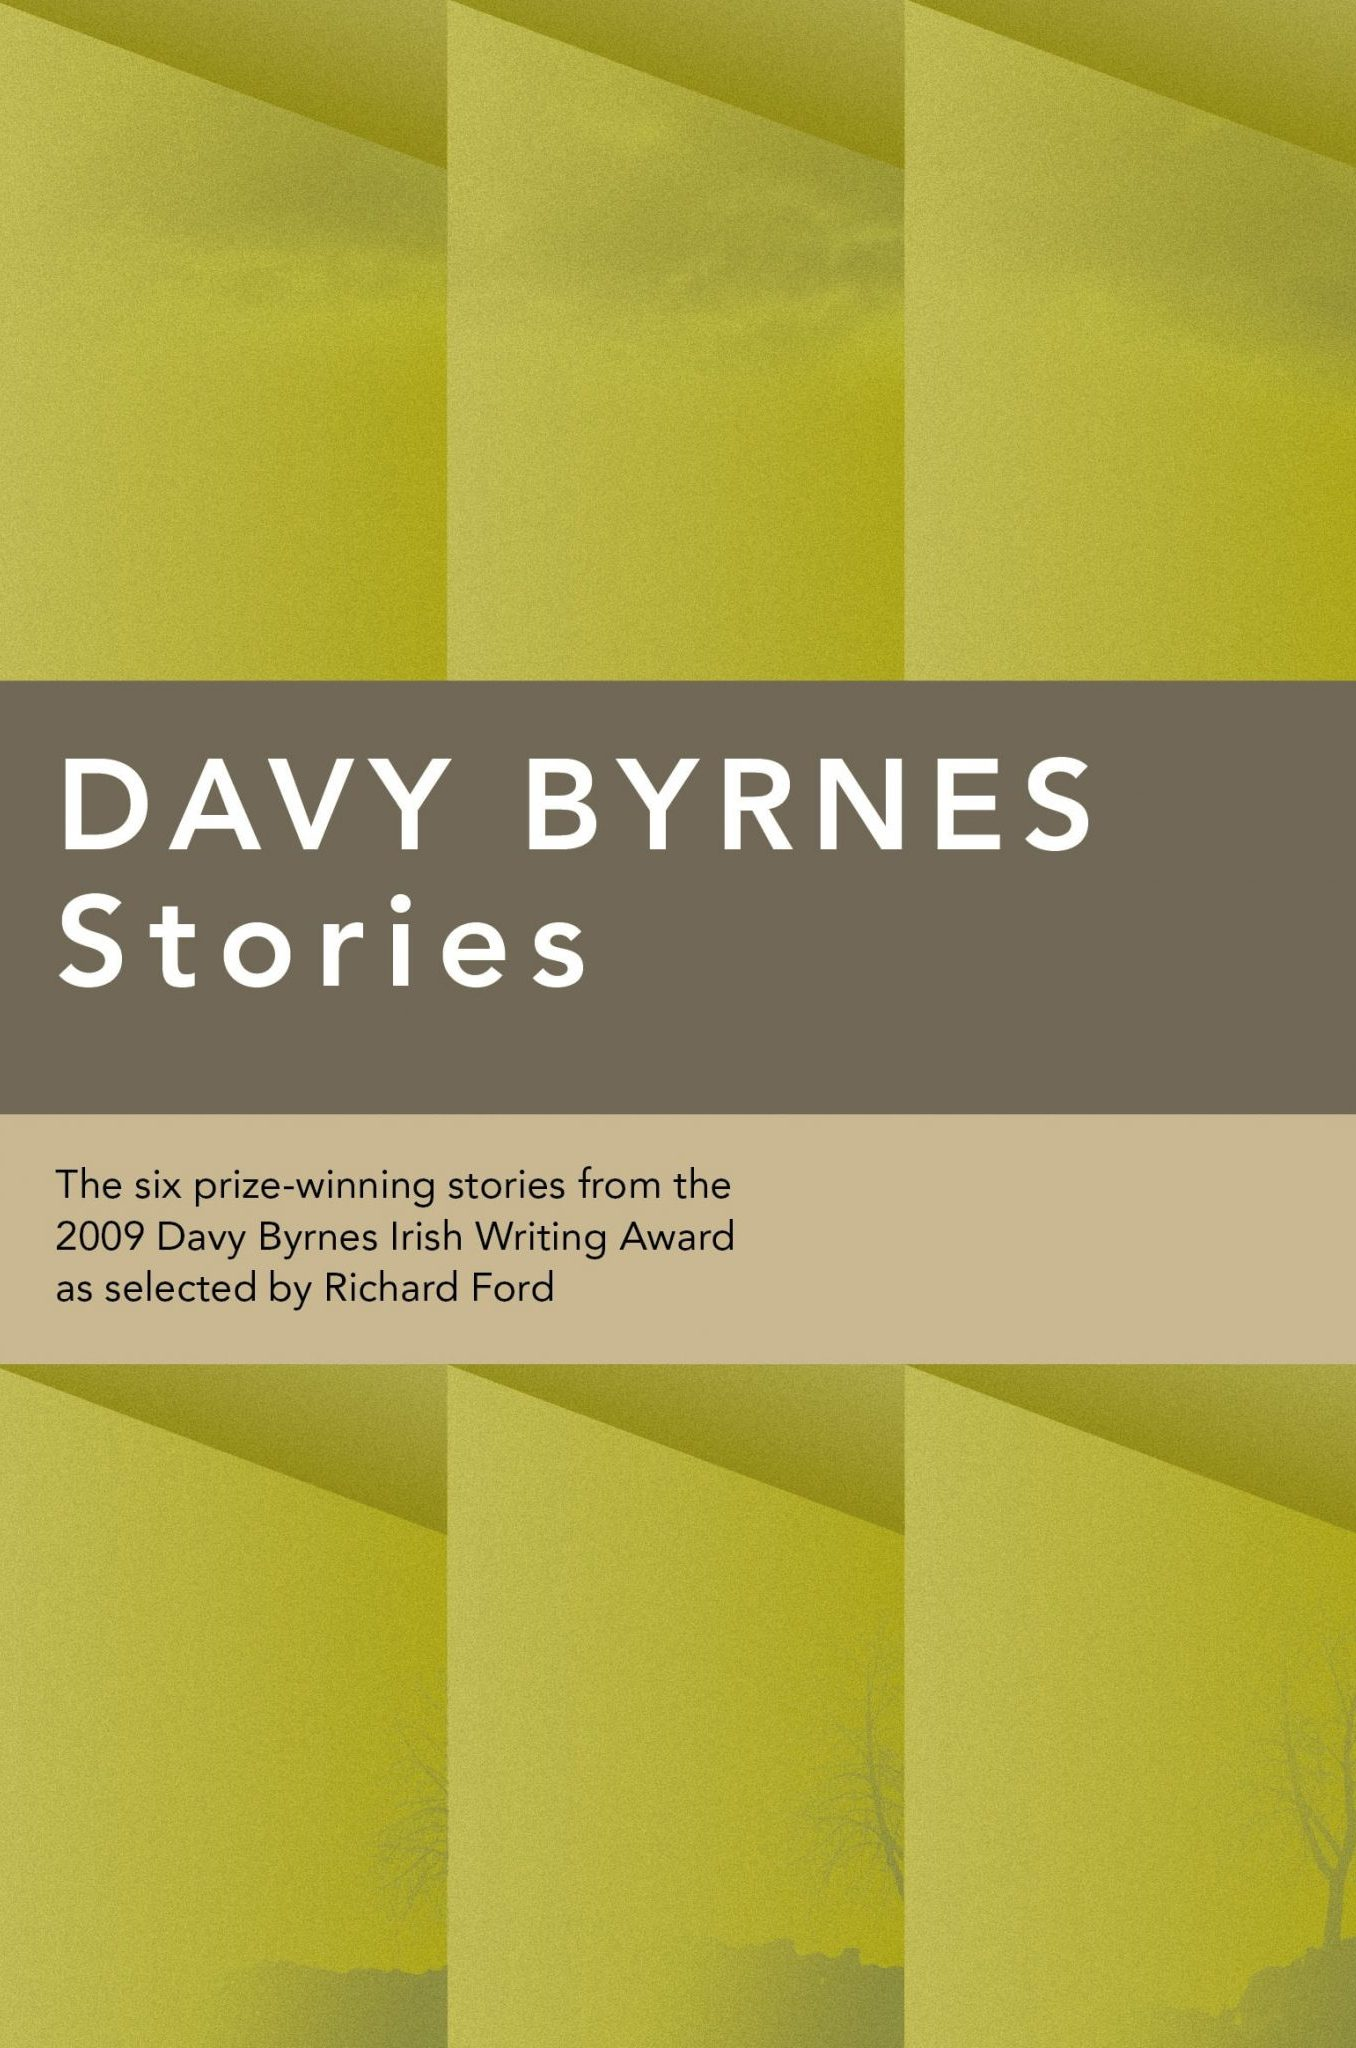 Davy Byrnes Stories cover